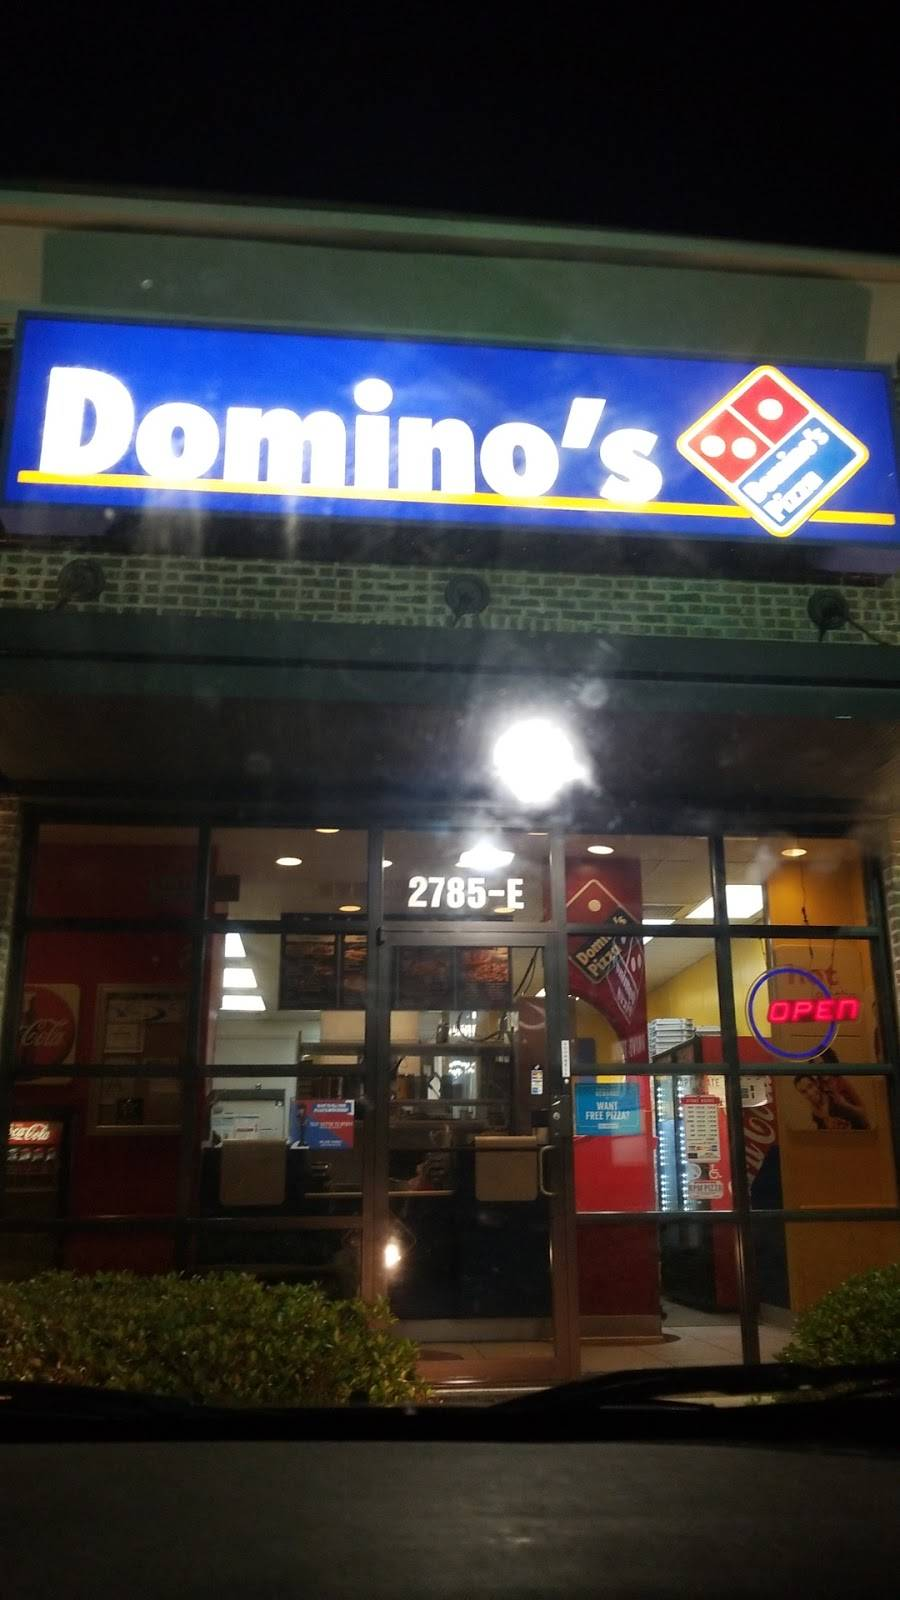 Dominos Pizza   meal delivery   2785 Highway 49 S, Ste E, Florence, MS 39073, USA   6018455030 OR +1 601-845-5030